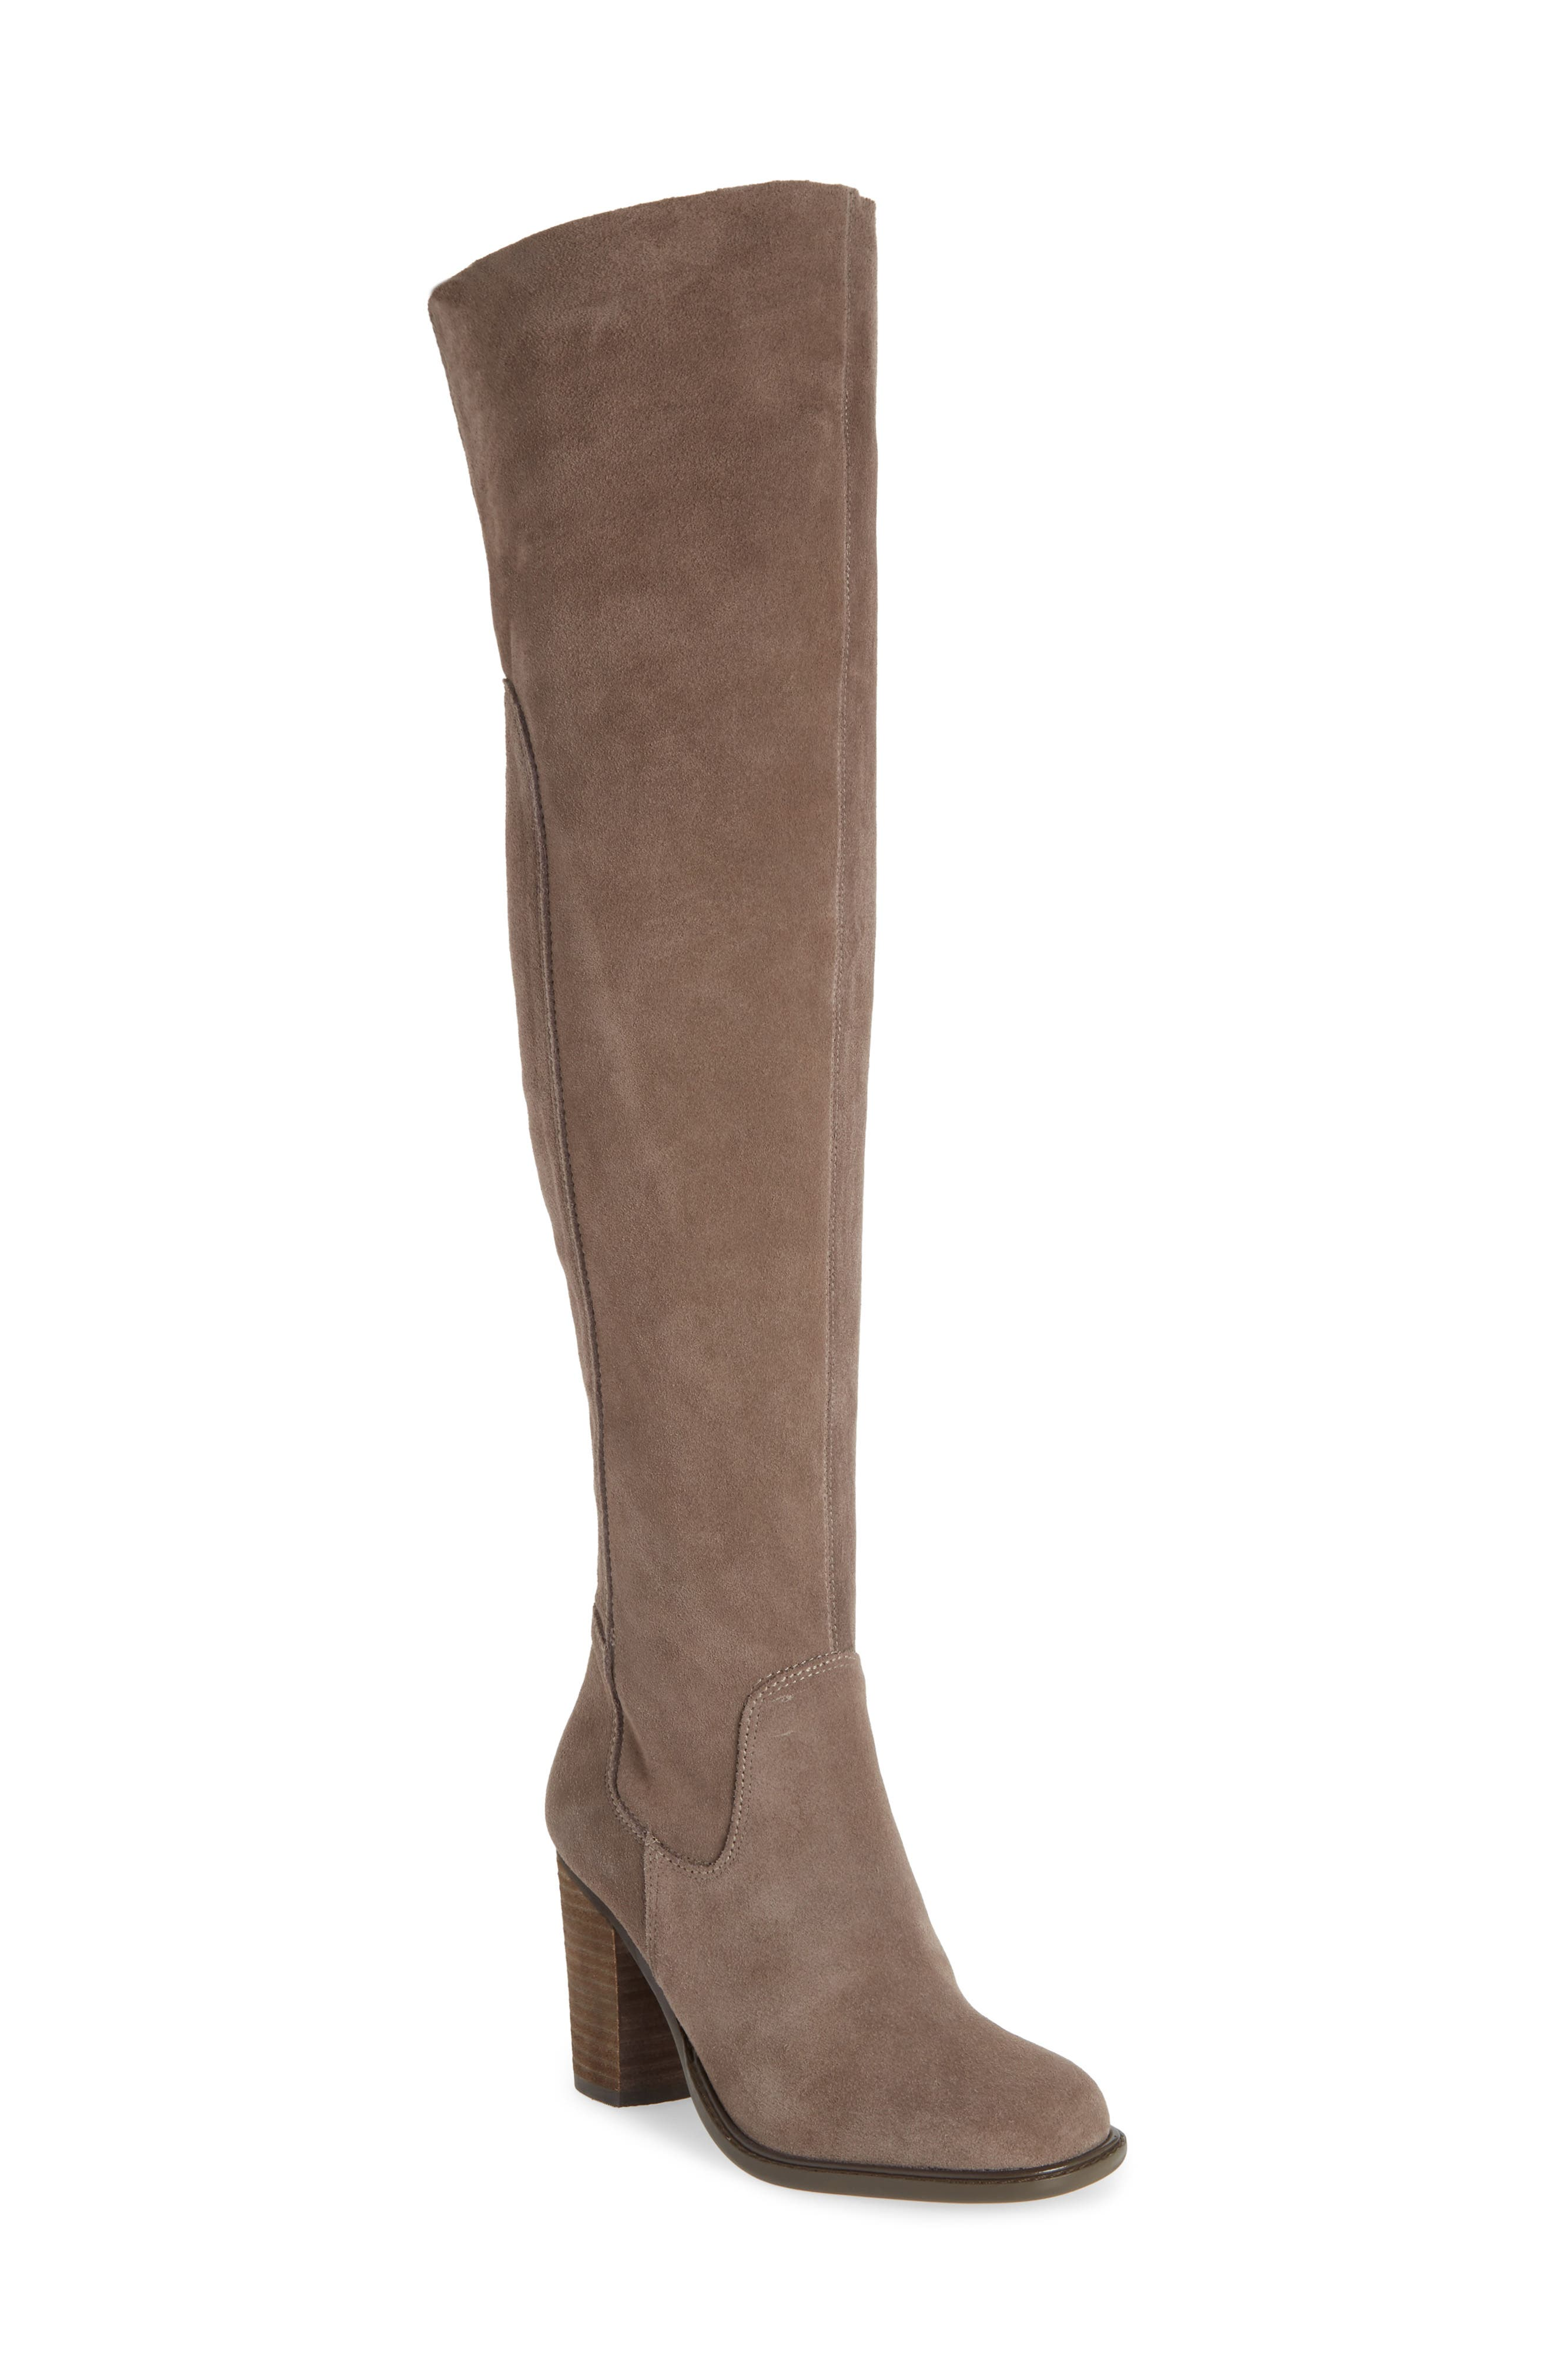 KELSI DAGGER BROOKLYN Logan Over the Knee Boot, Main, color, WARM GREY SUEDE